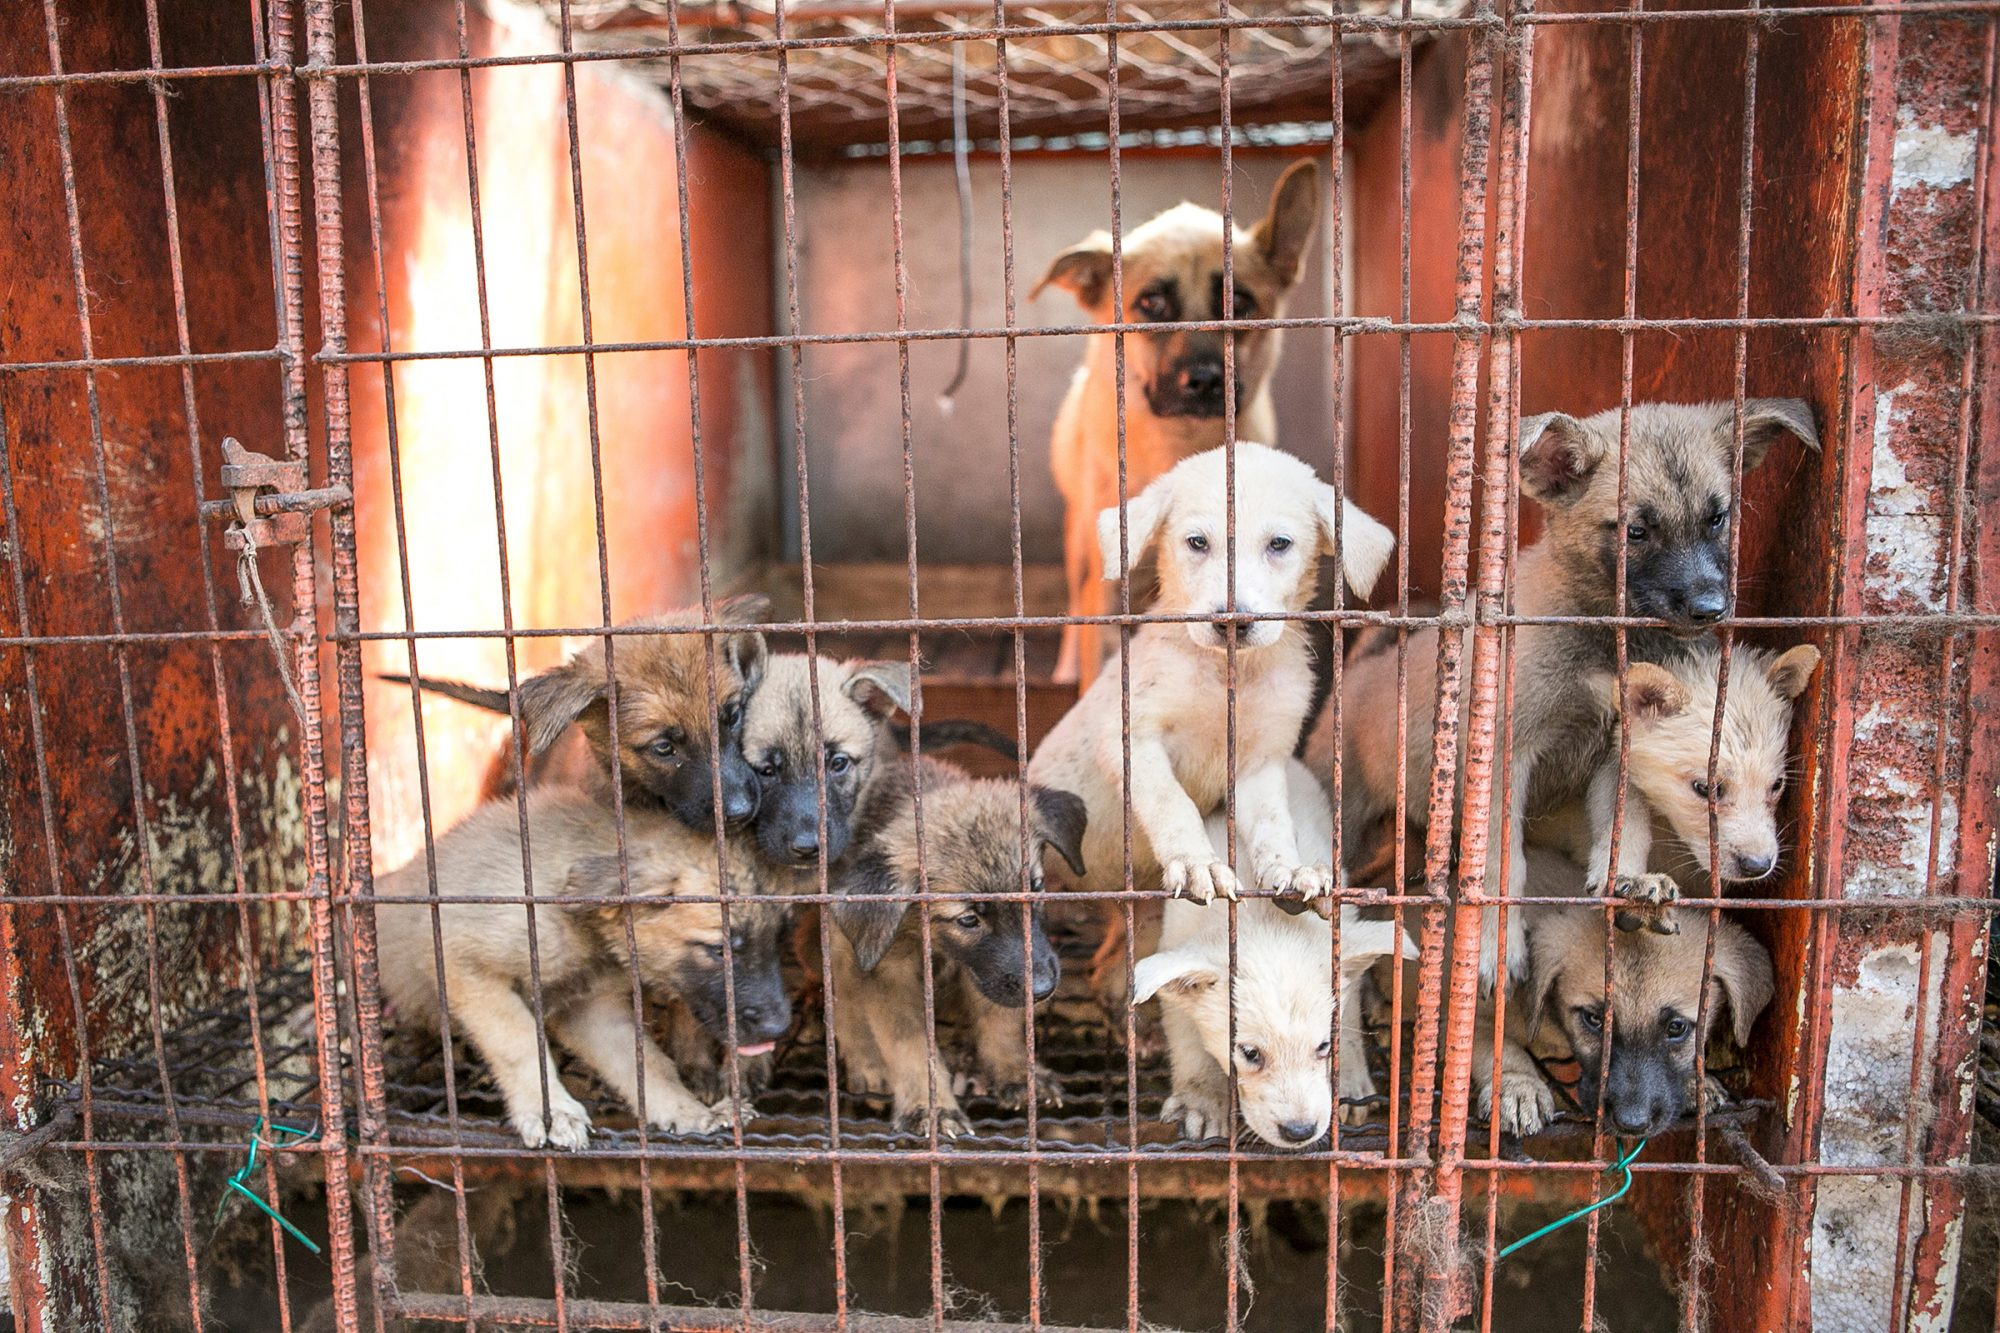 South Korea Dog Meat Farm Rescue